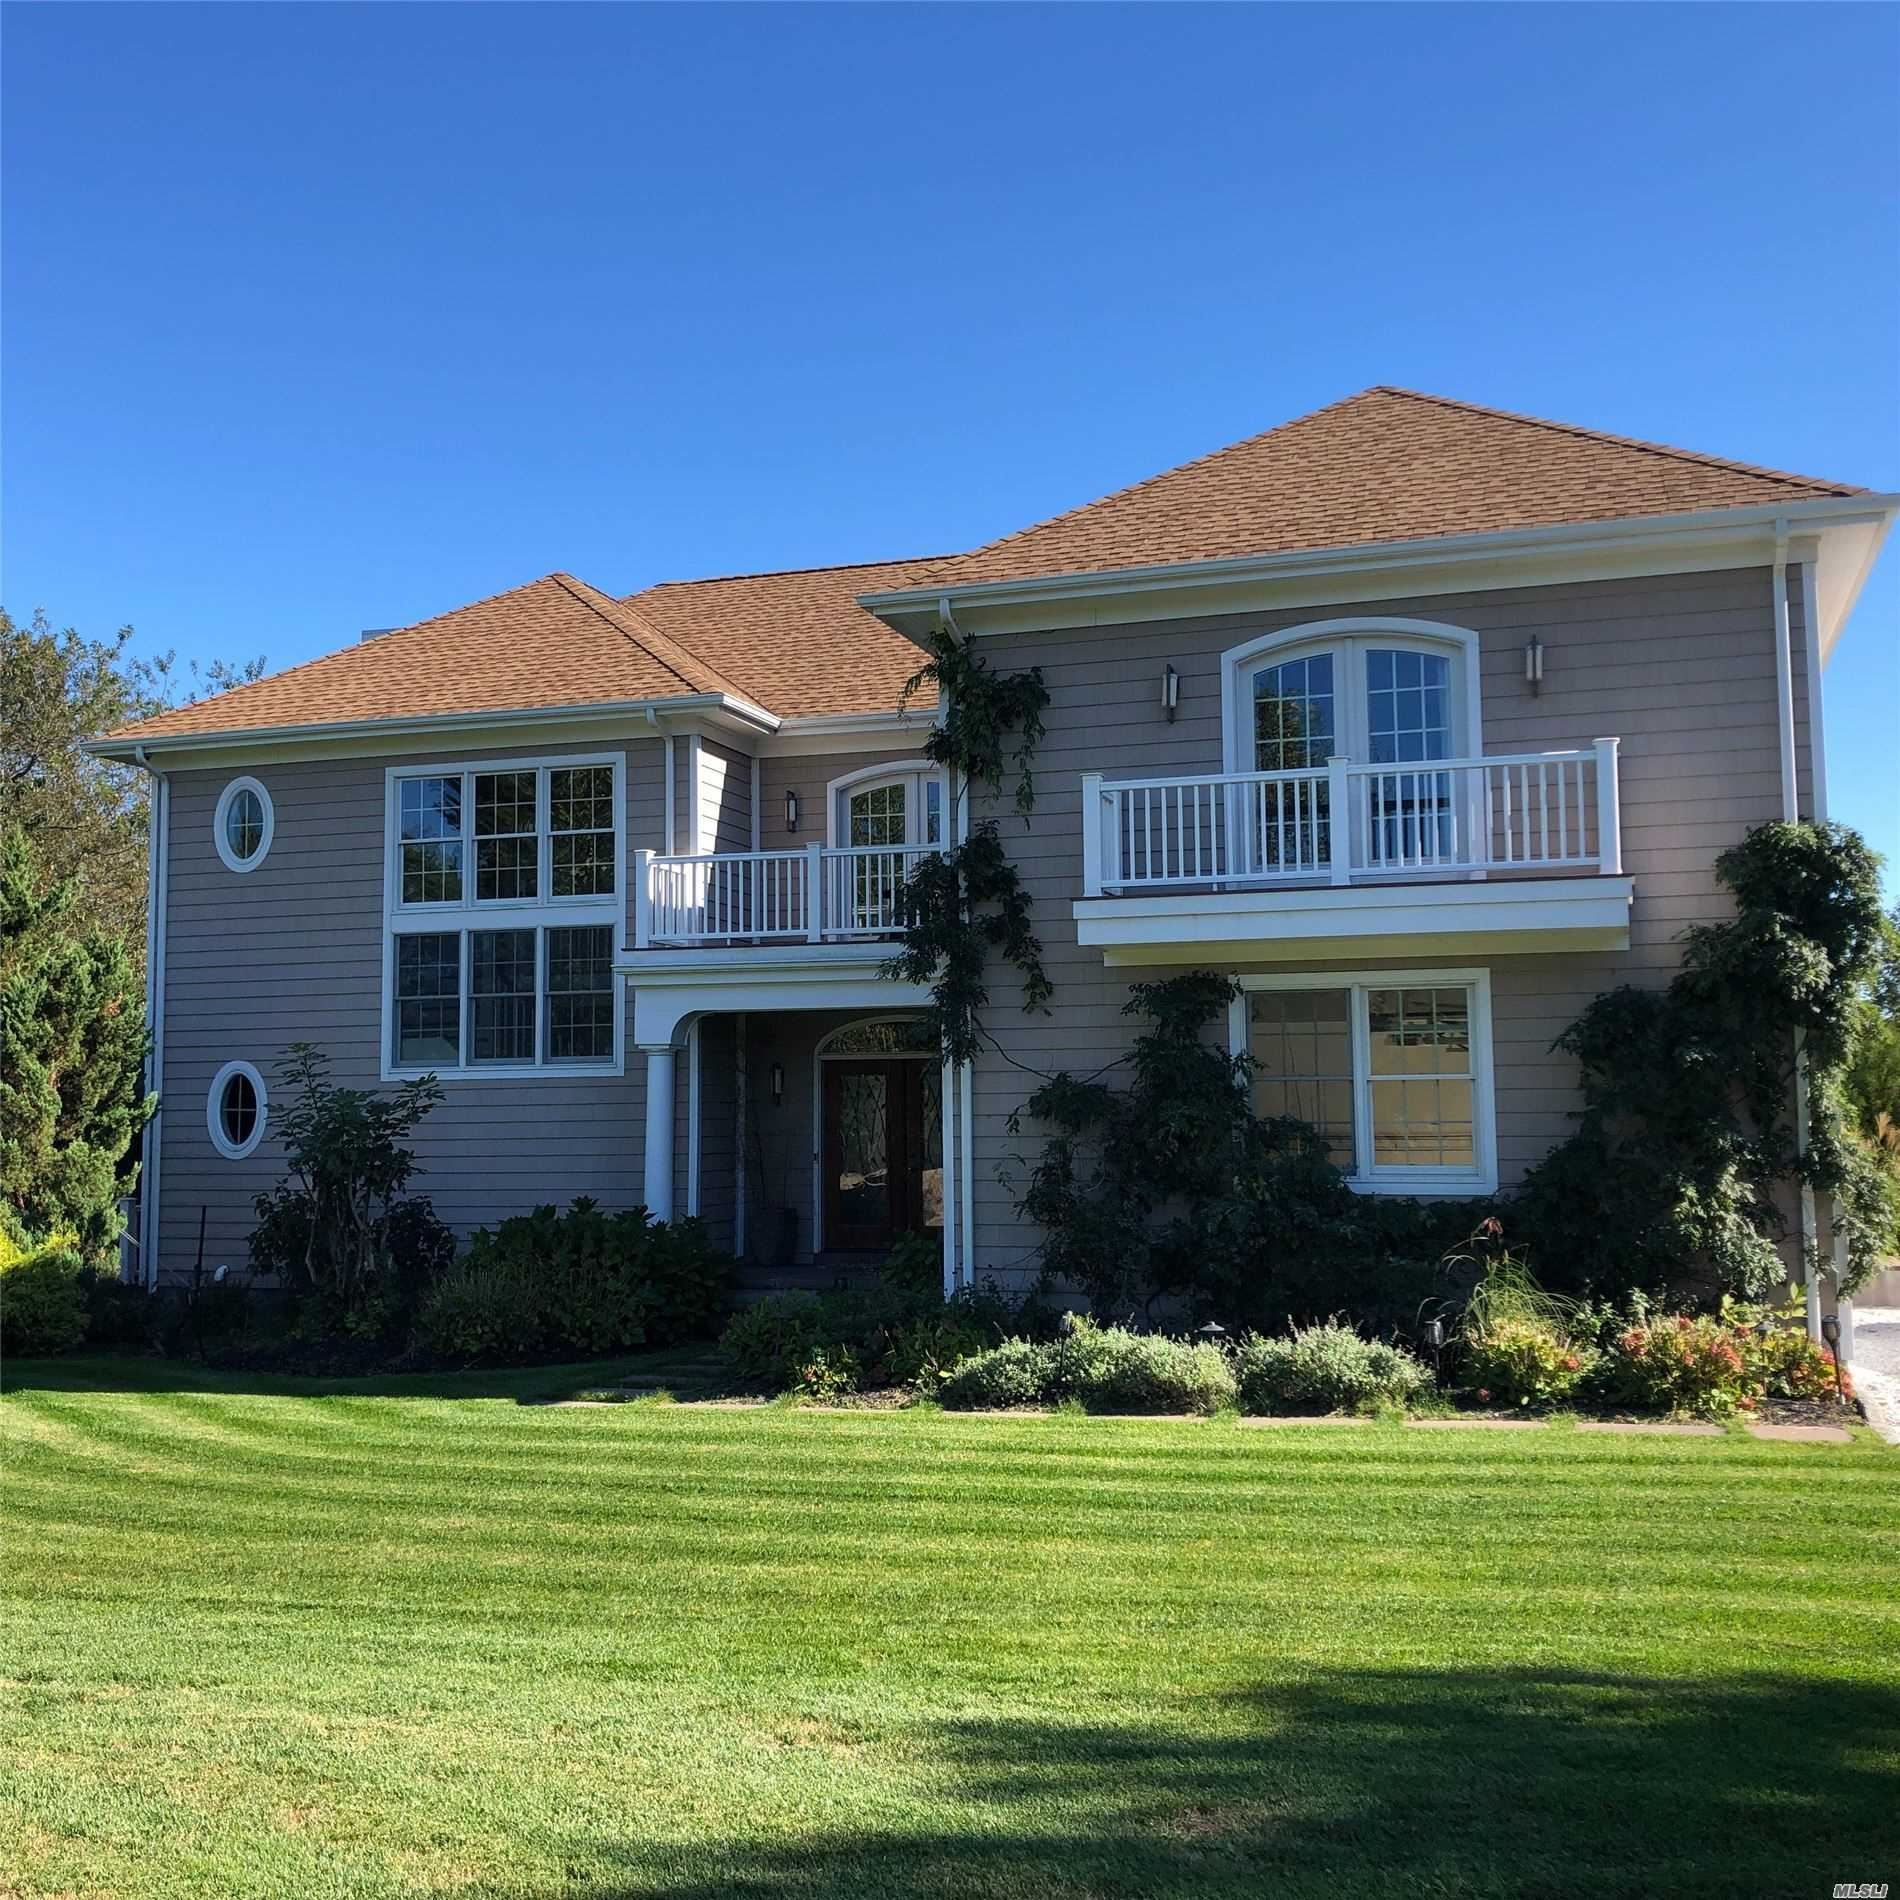 185 Rockcove Court, Greenport, NY 11944 - MLS#: 3187845